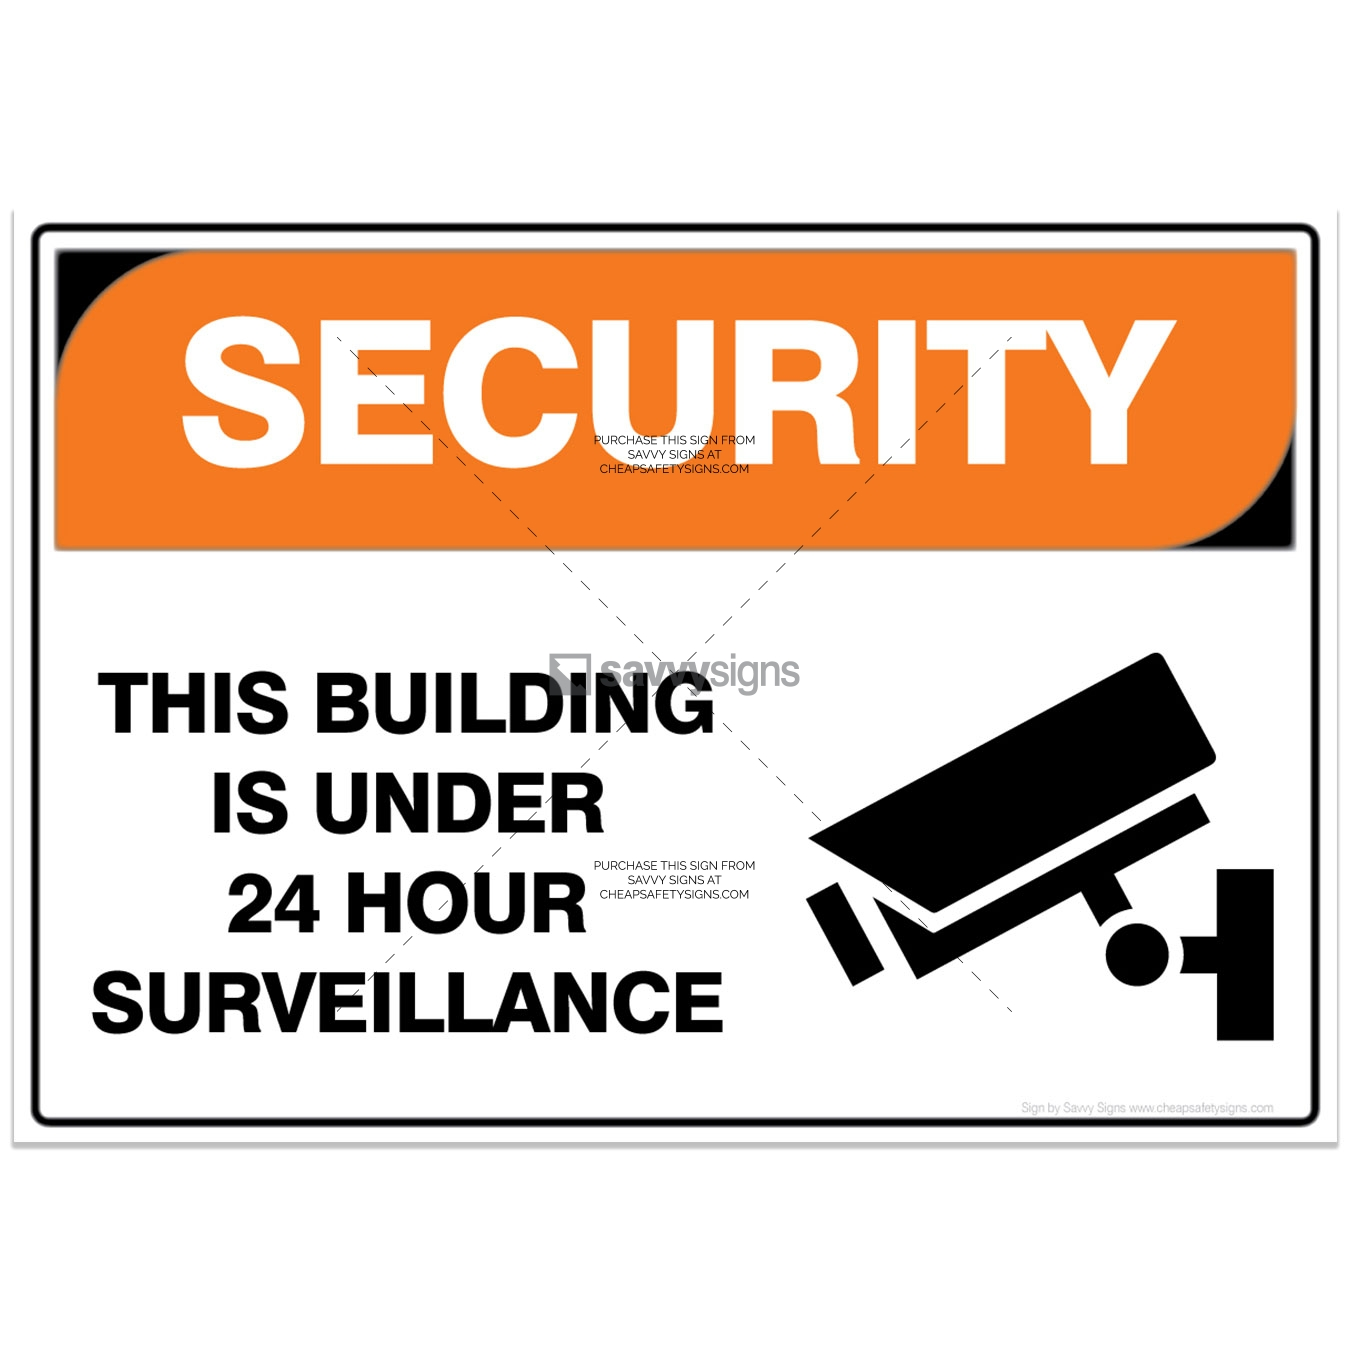 SSSEC3025-SECURITY-Workplace-Safety-Signs_Savvy-Signs_v3